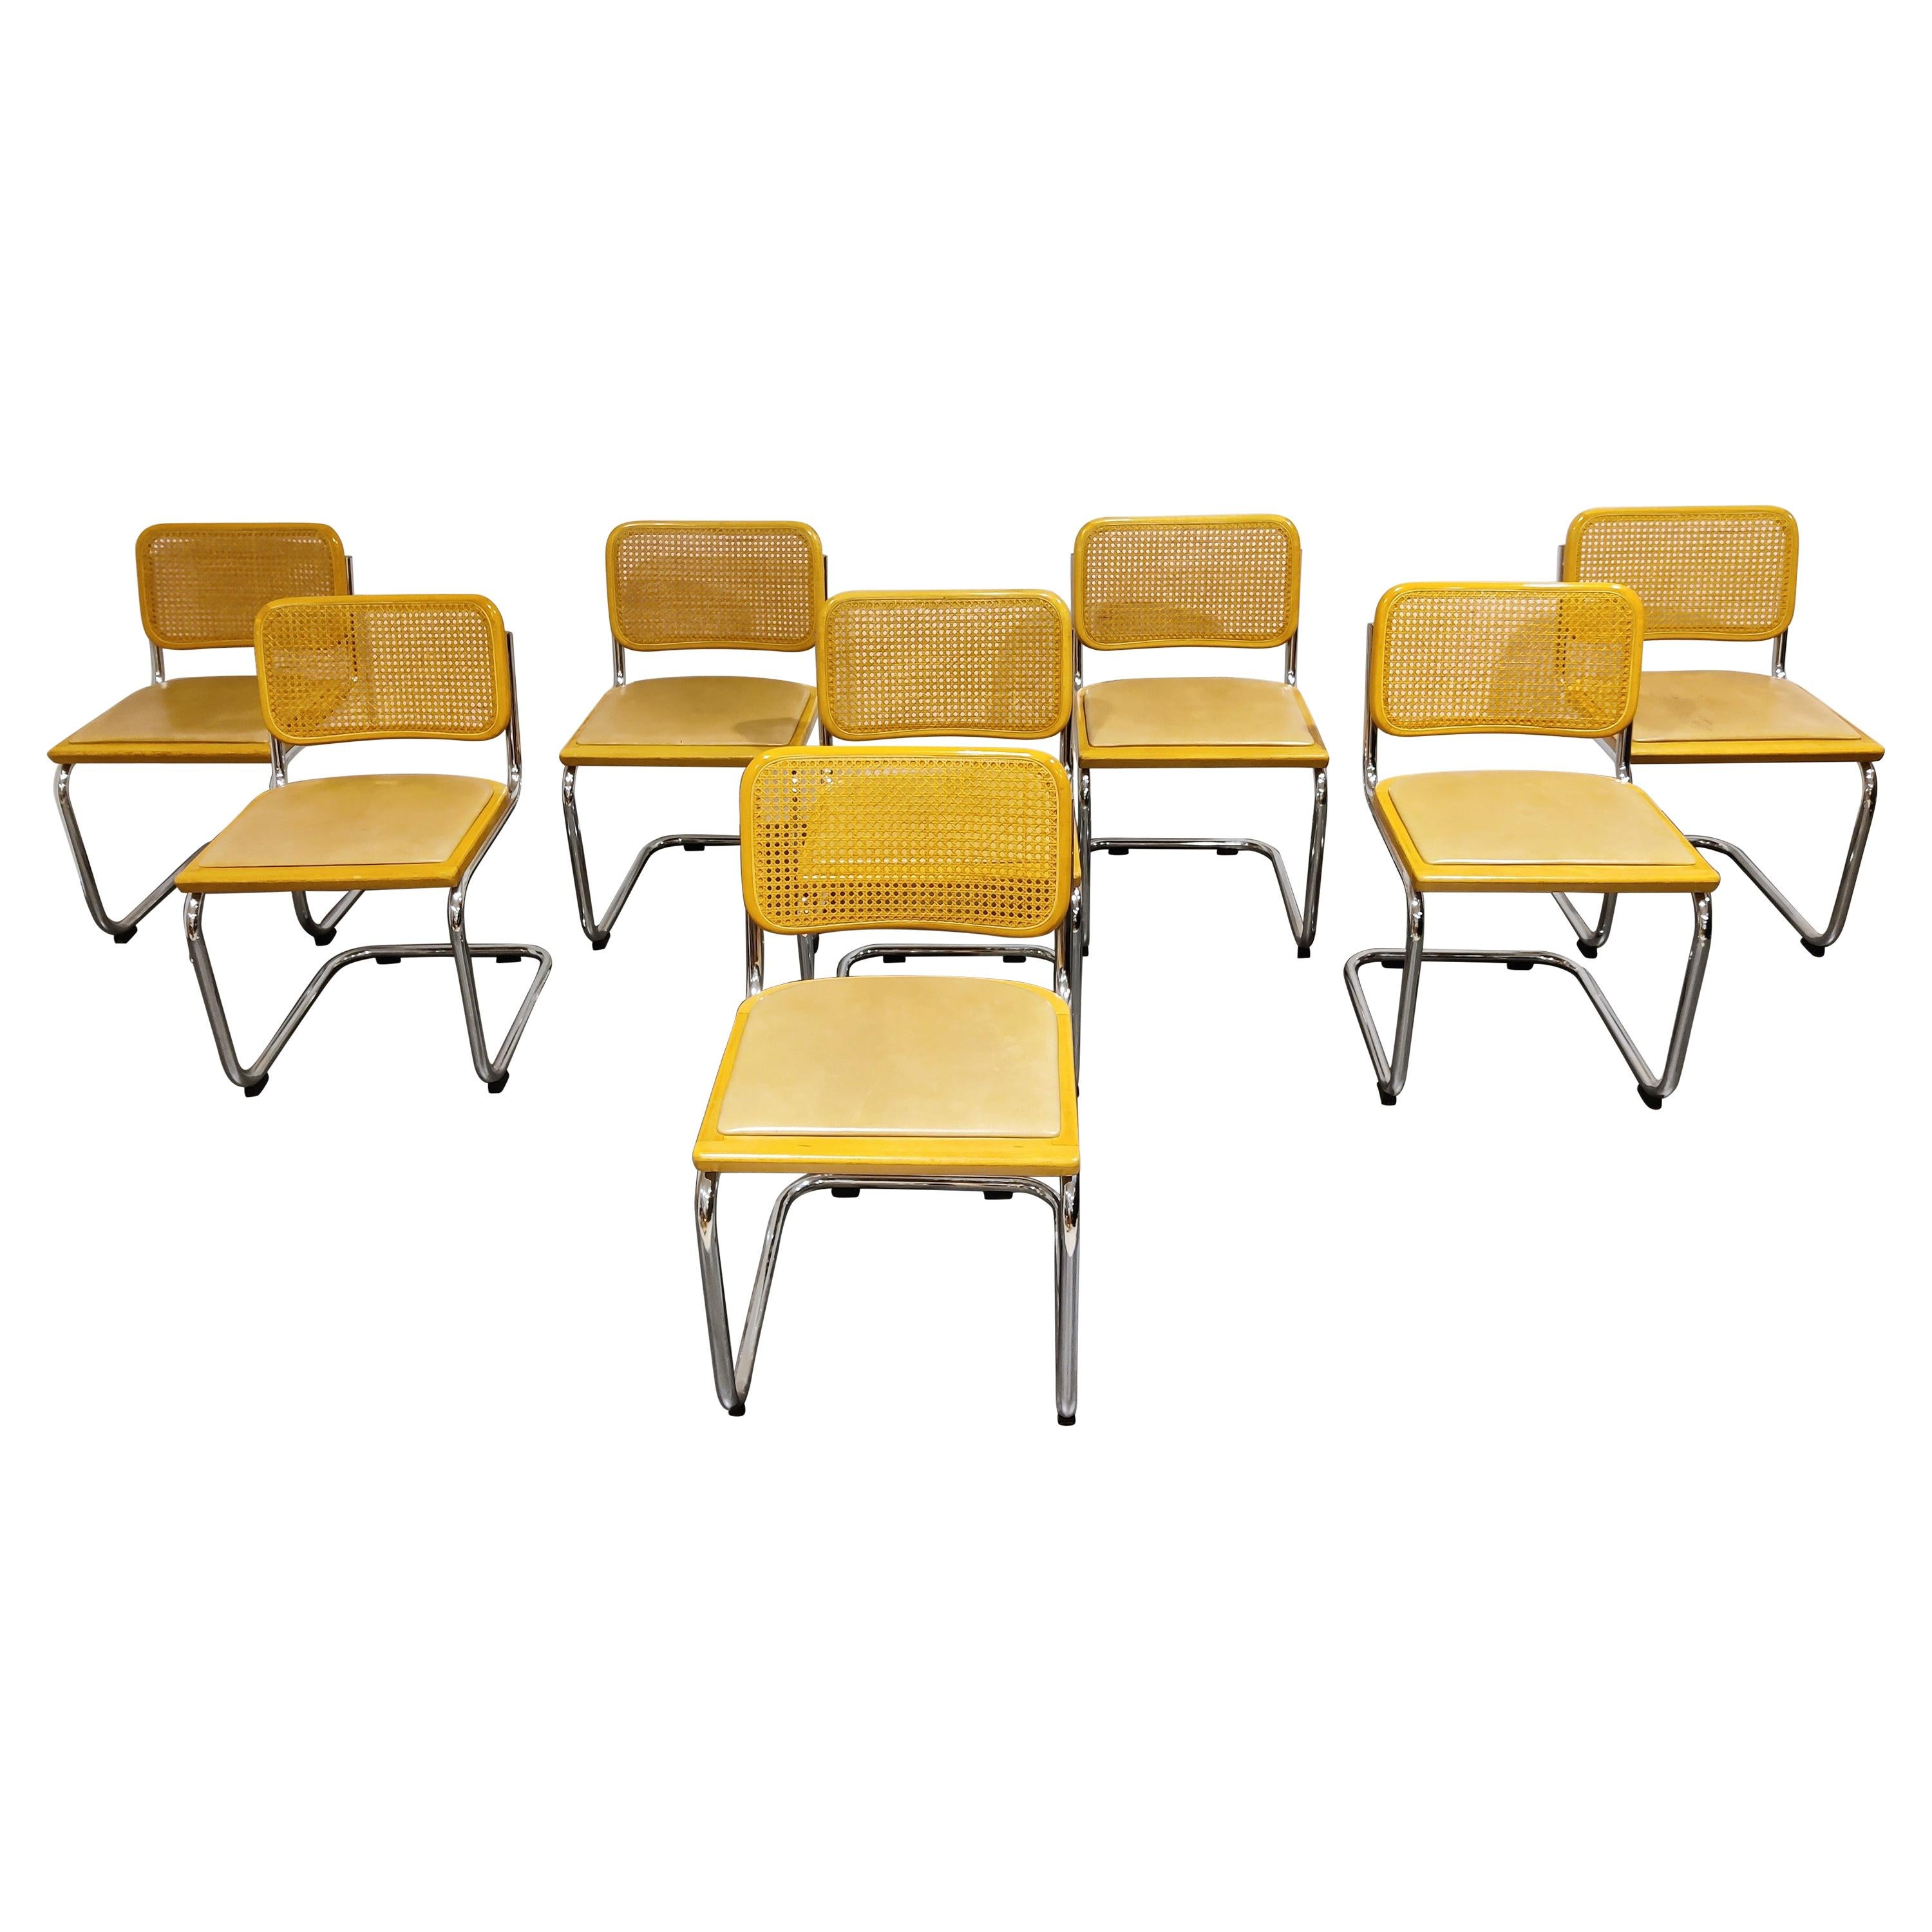 Vintage Marcel Breuer Cesca Style Chairs Set of 8, Made in Italy, 1970s